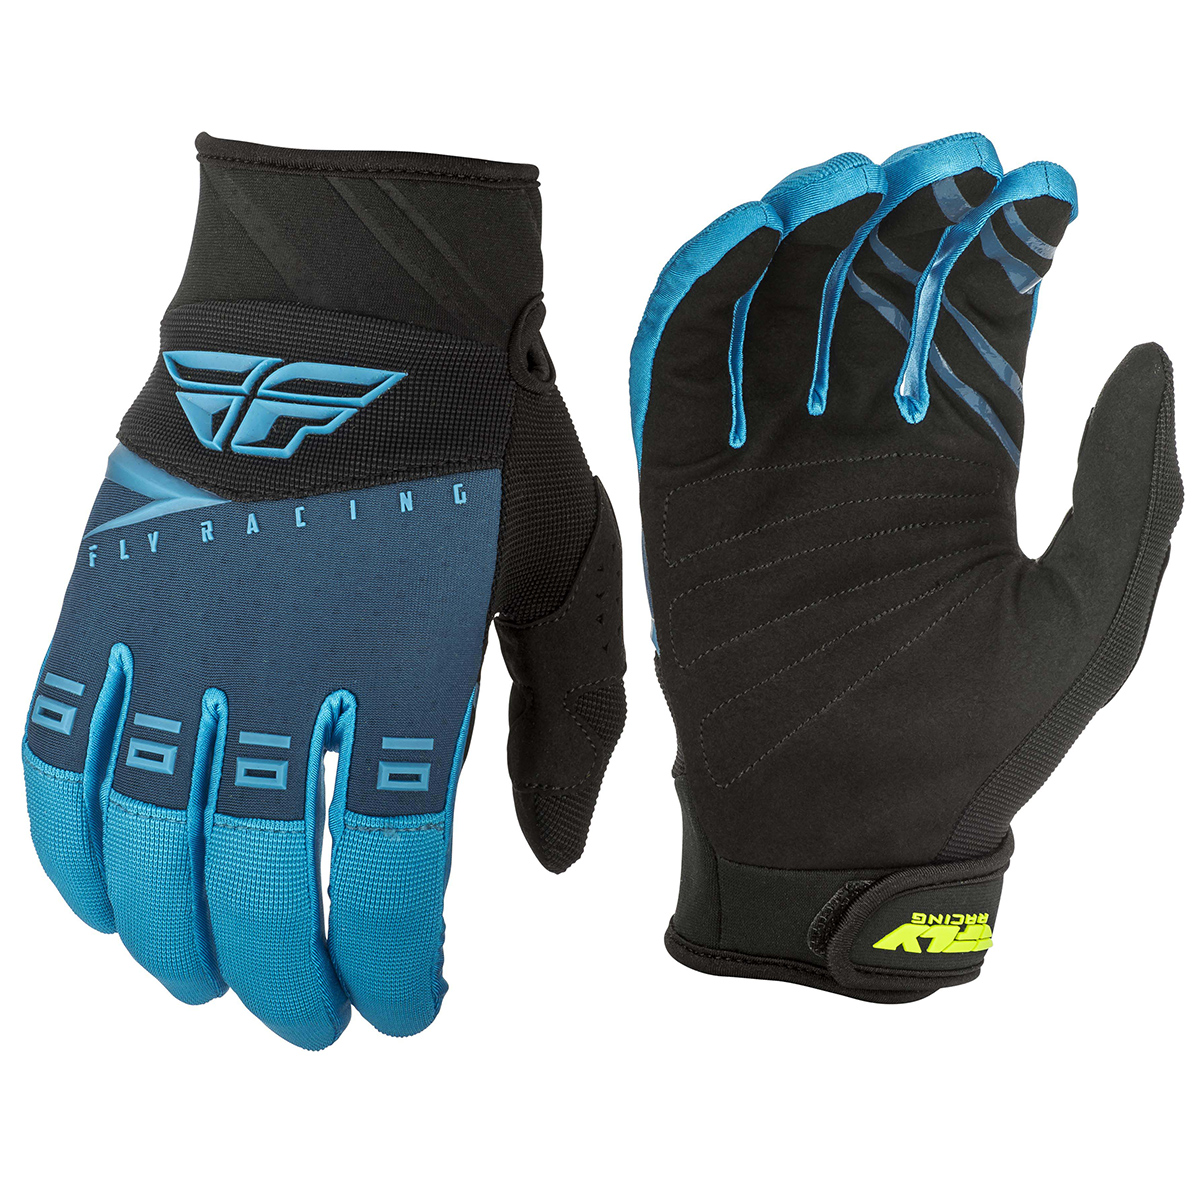 FLY F-16 GLOVE 2019 GLOVES